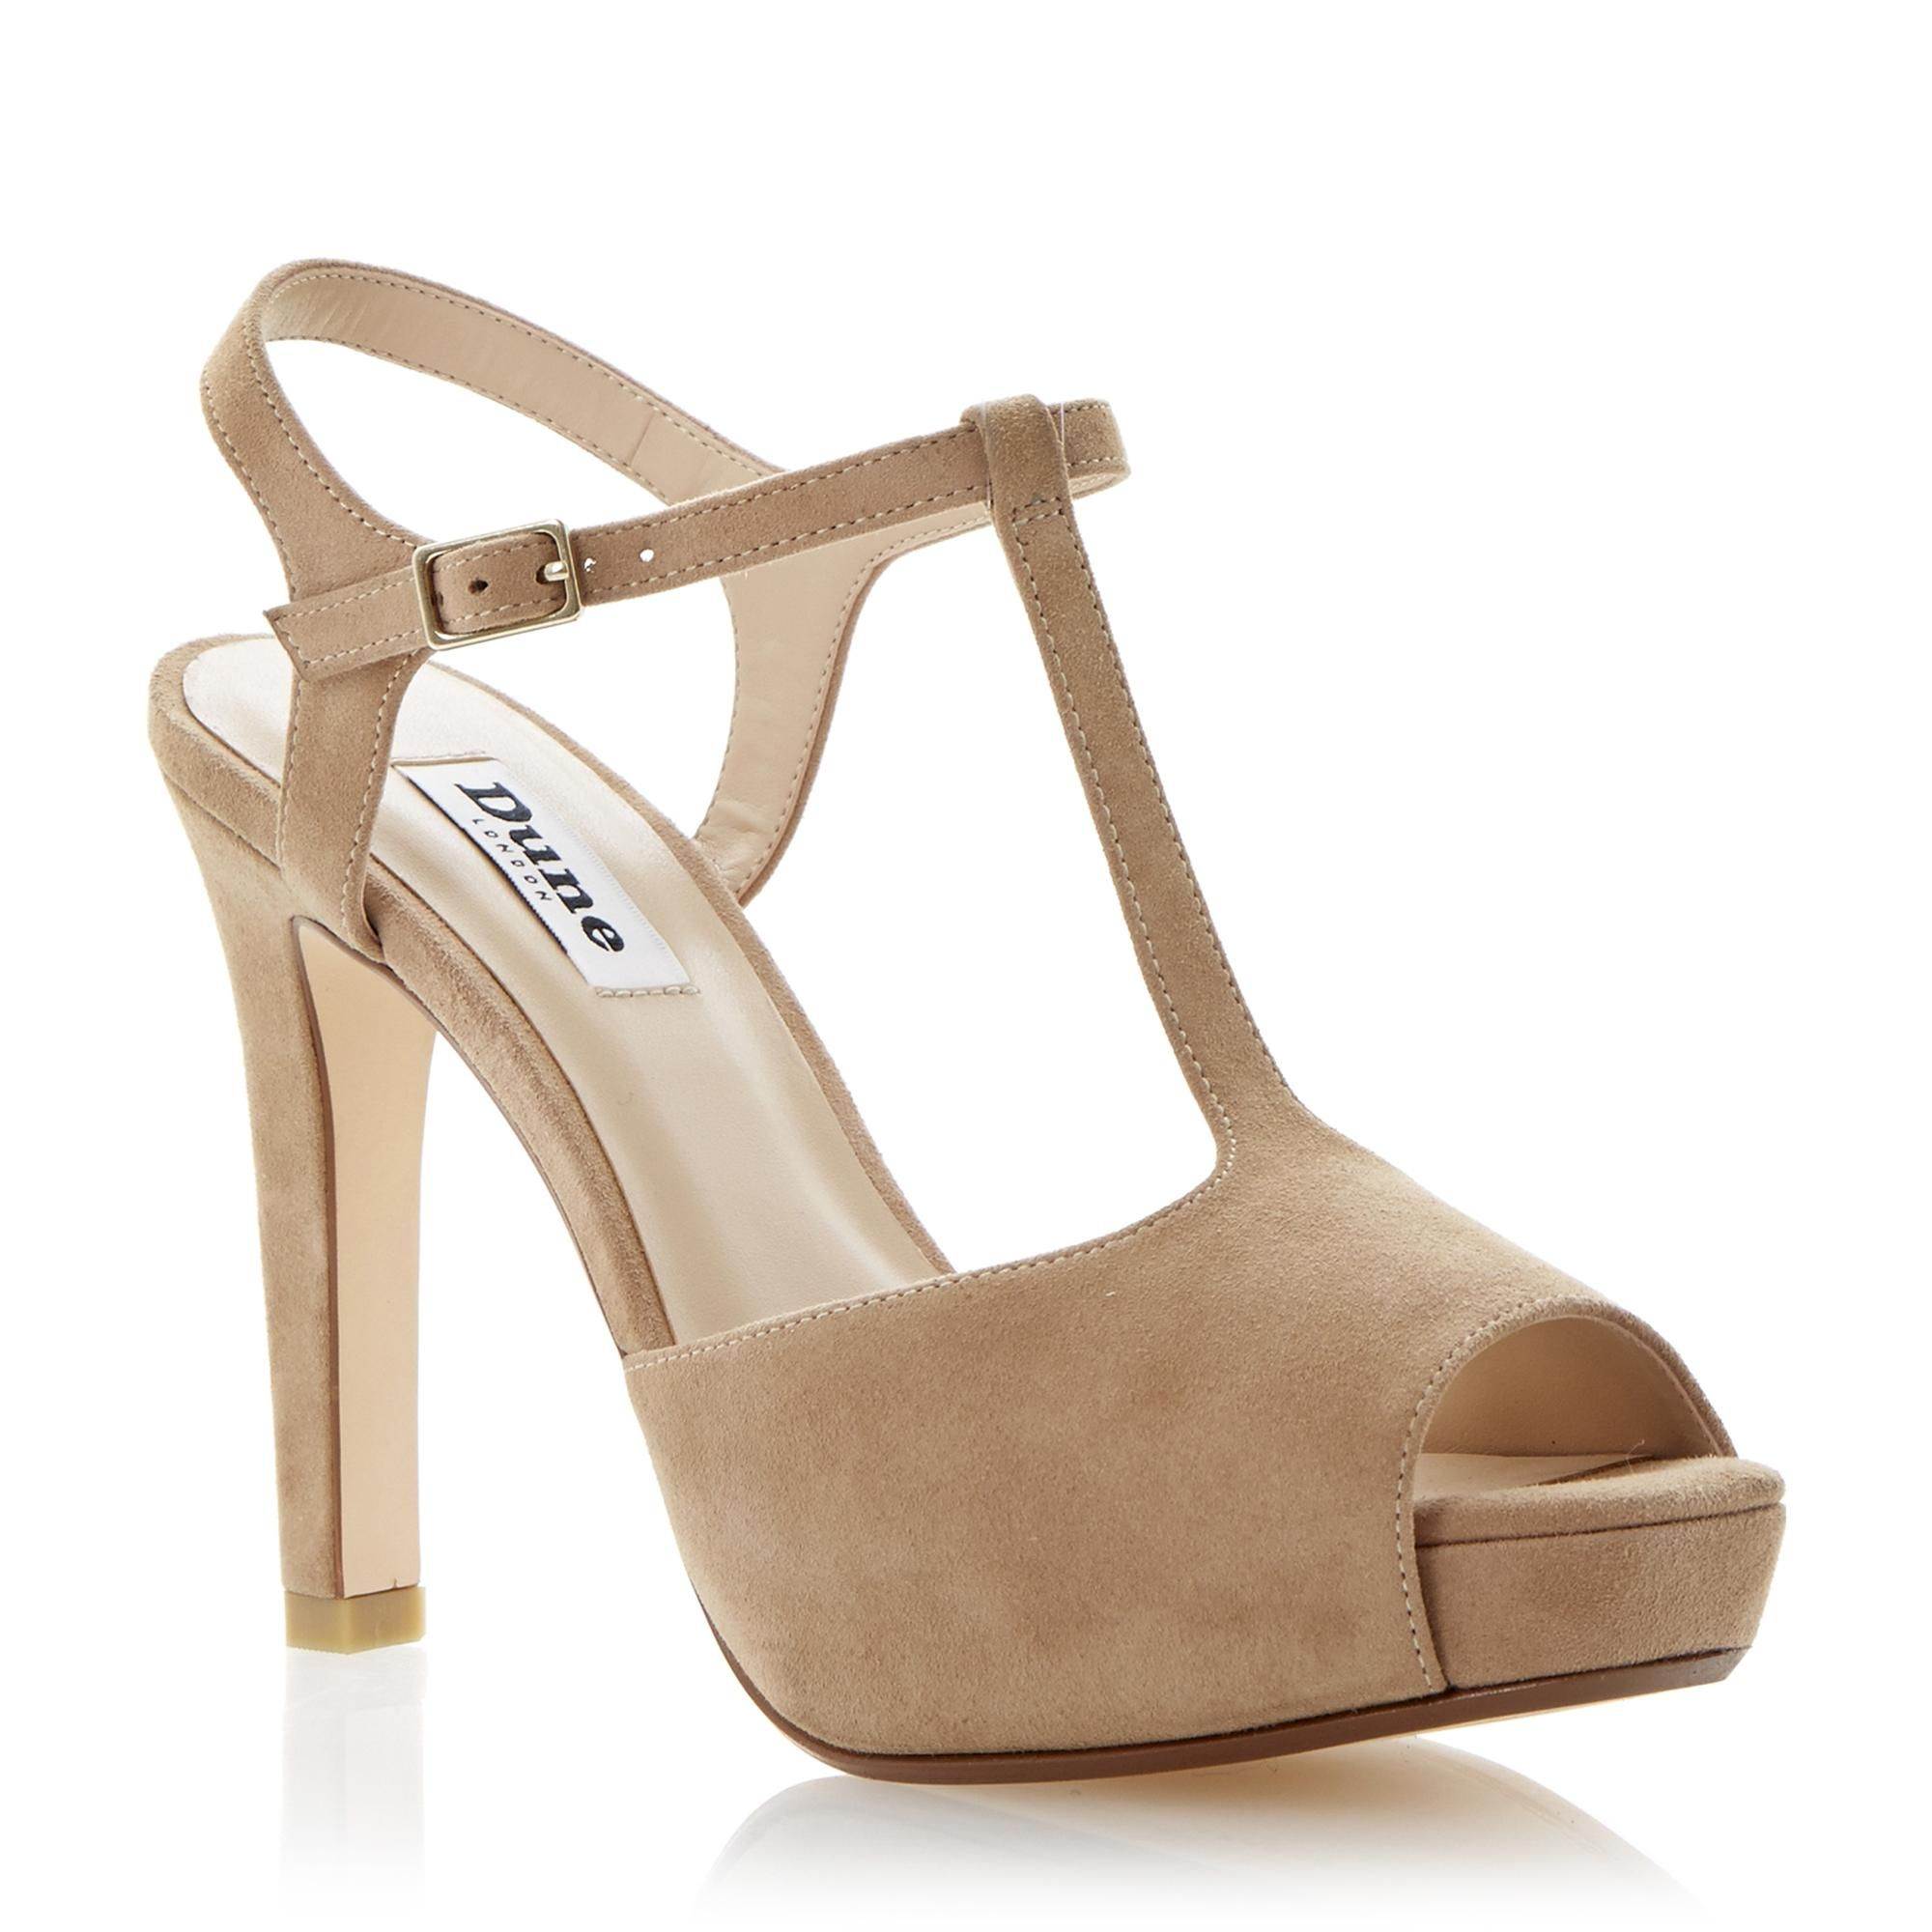 e867b55086 DUNE LADIES Neutral HARLANE - Suede High Heel Platform T-Bar Sandal | Dune  Shoes Online